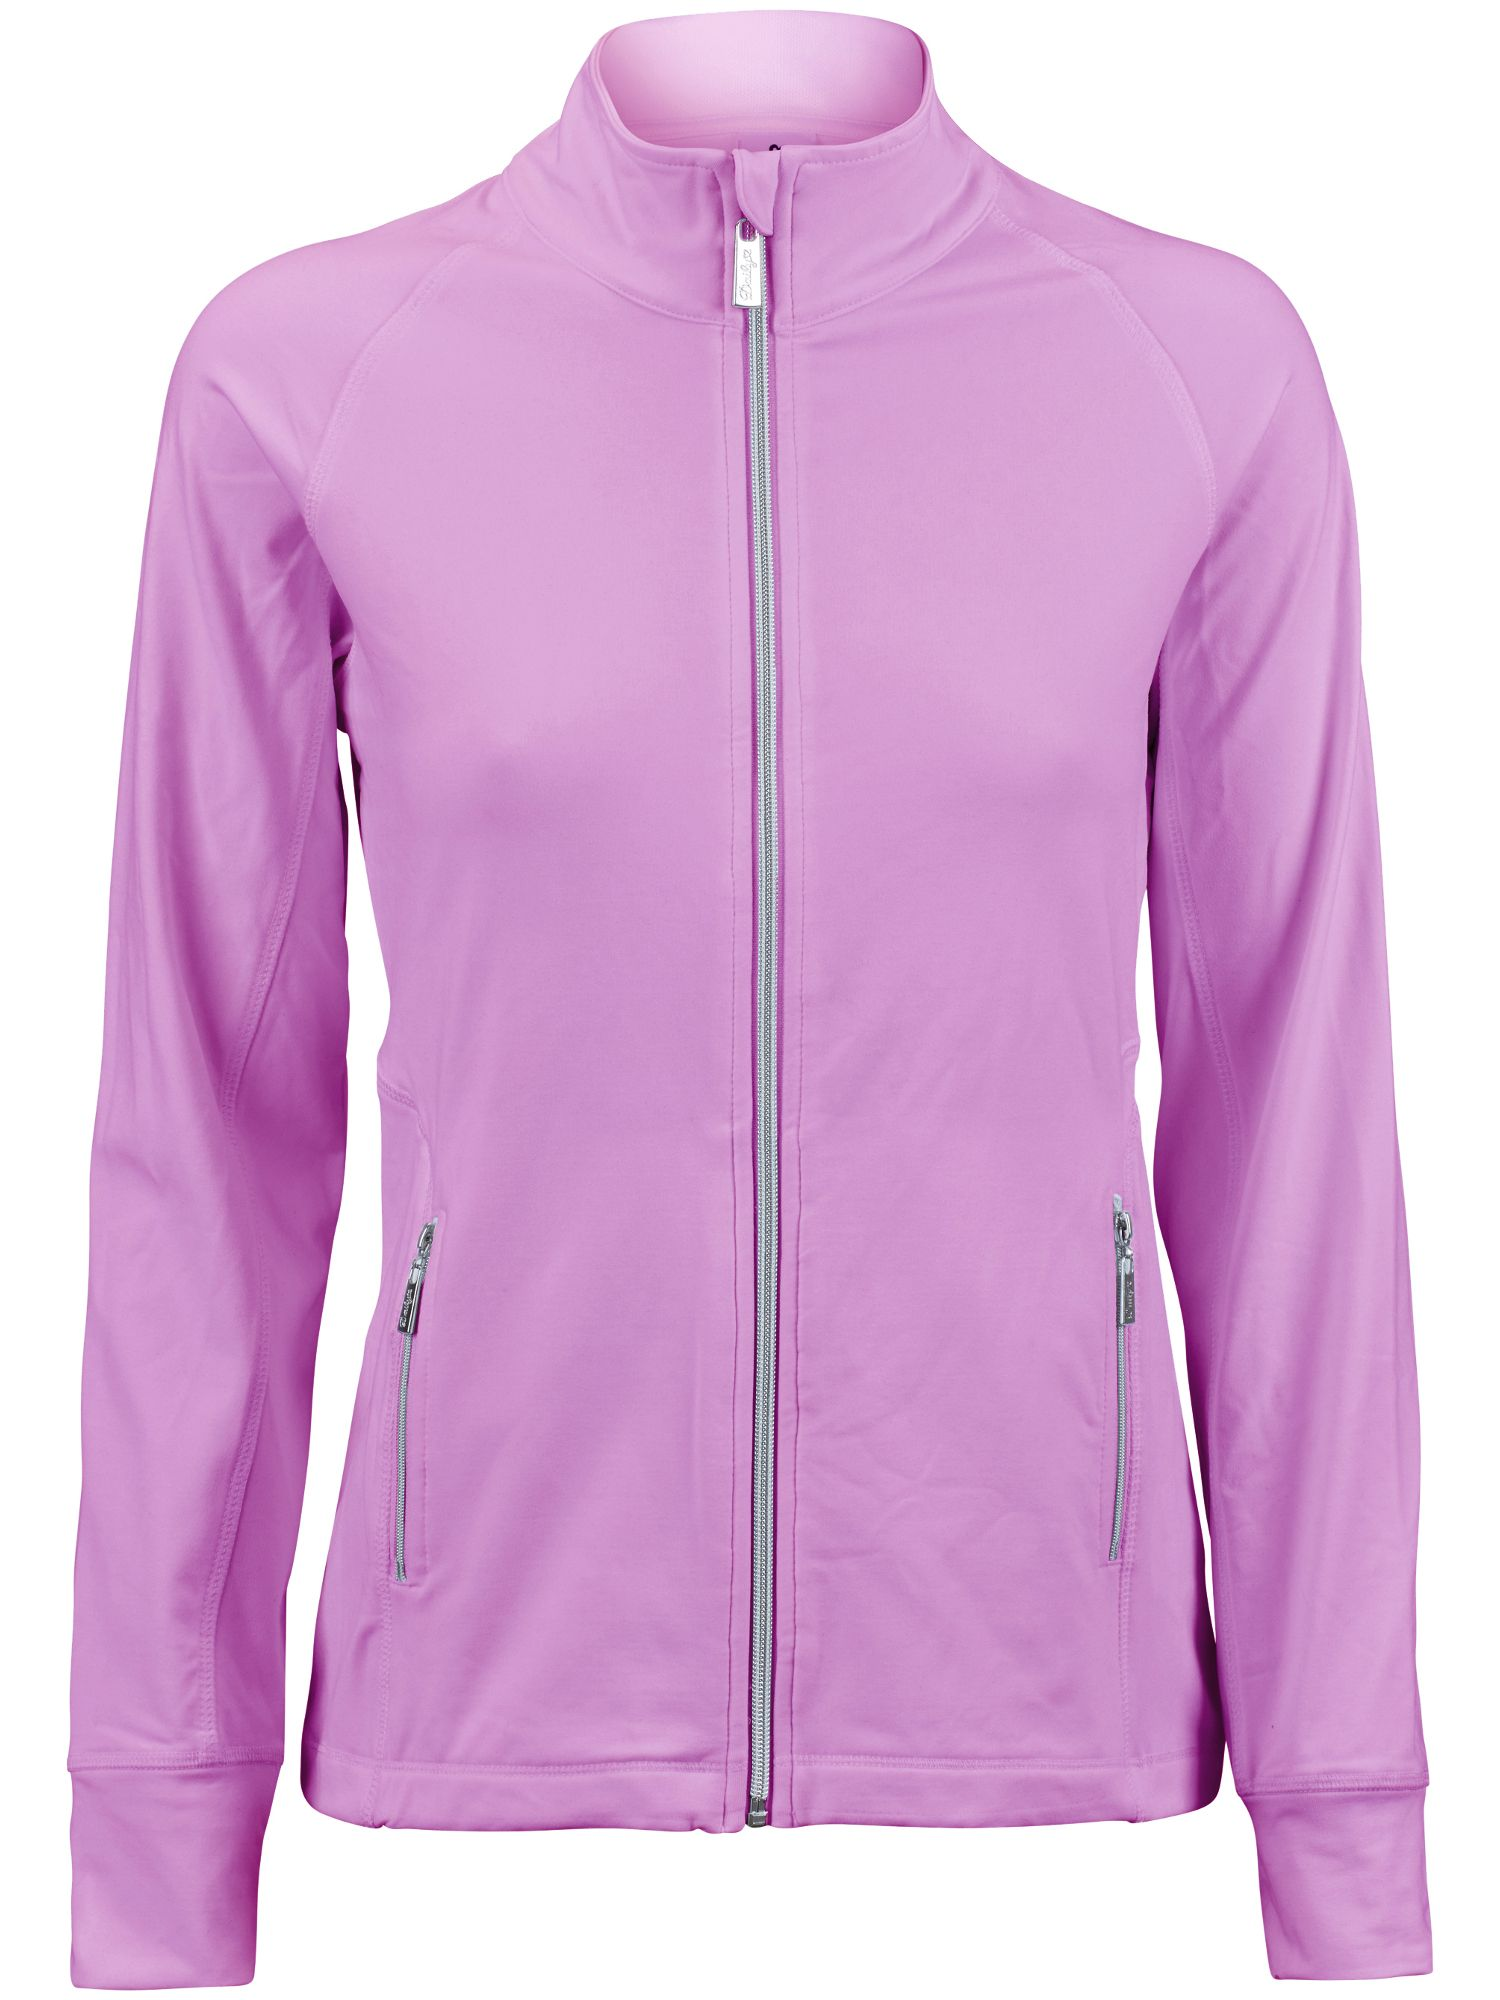 Daily Sports Bounce Jacket, Pink